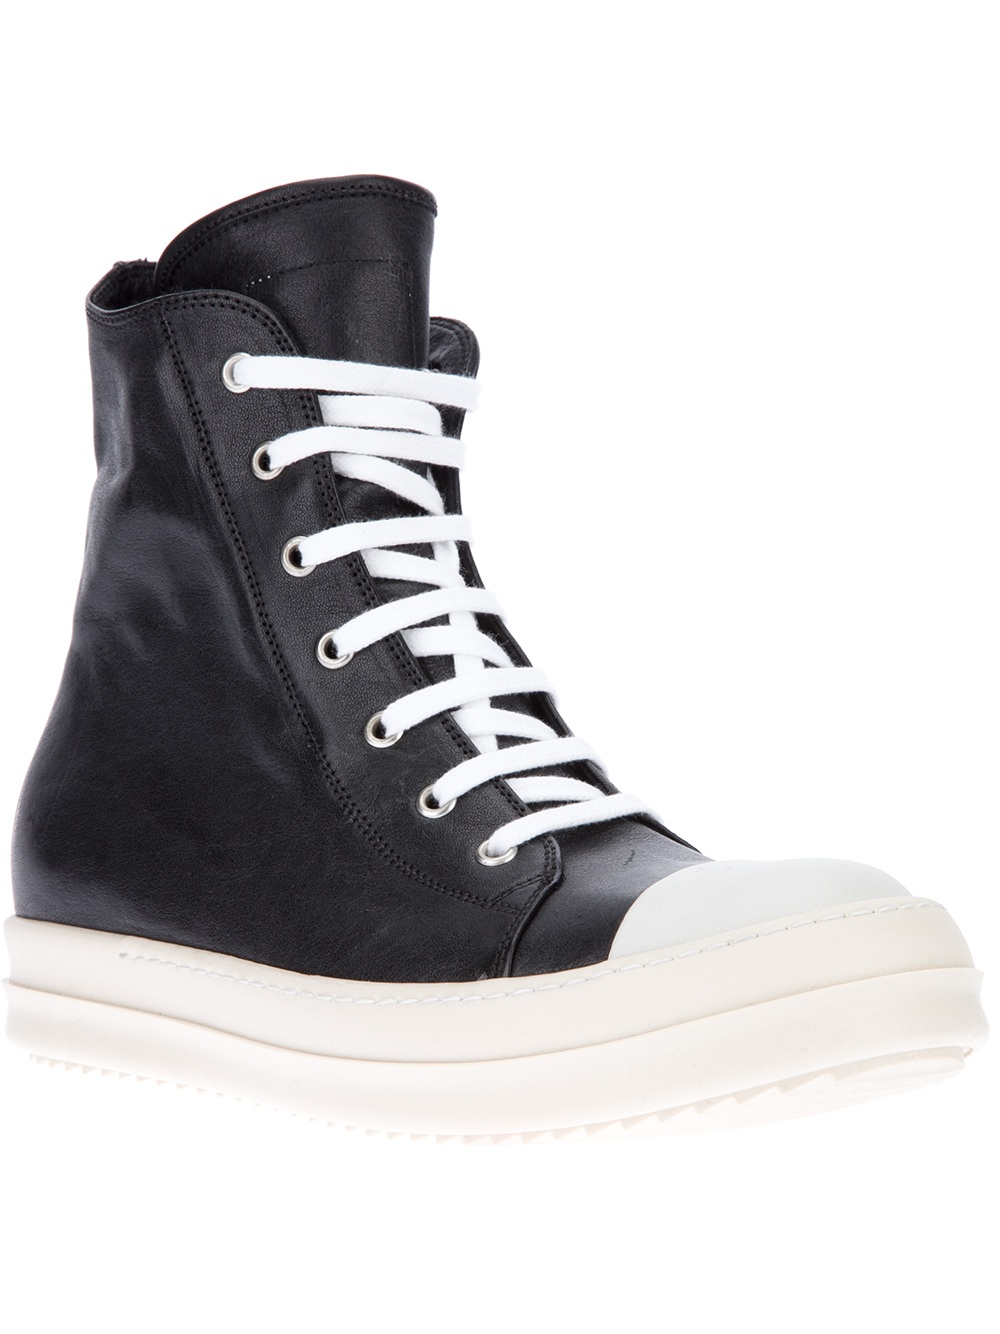 Rick OwensLeather High Trainers sJkOchzYv